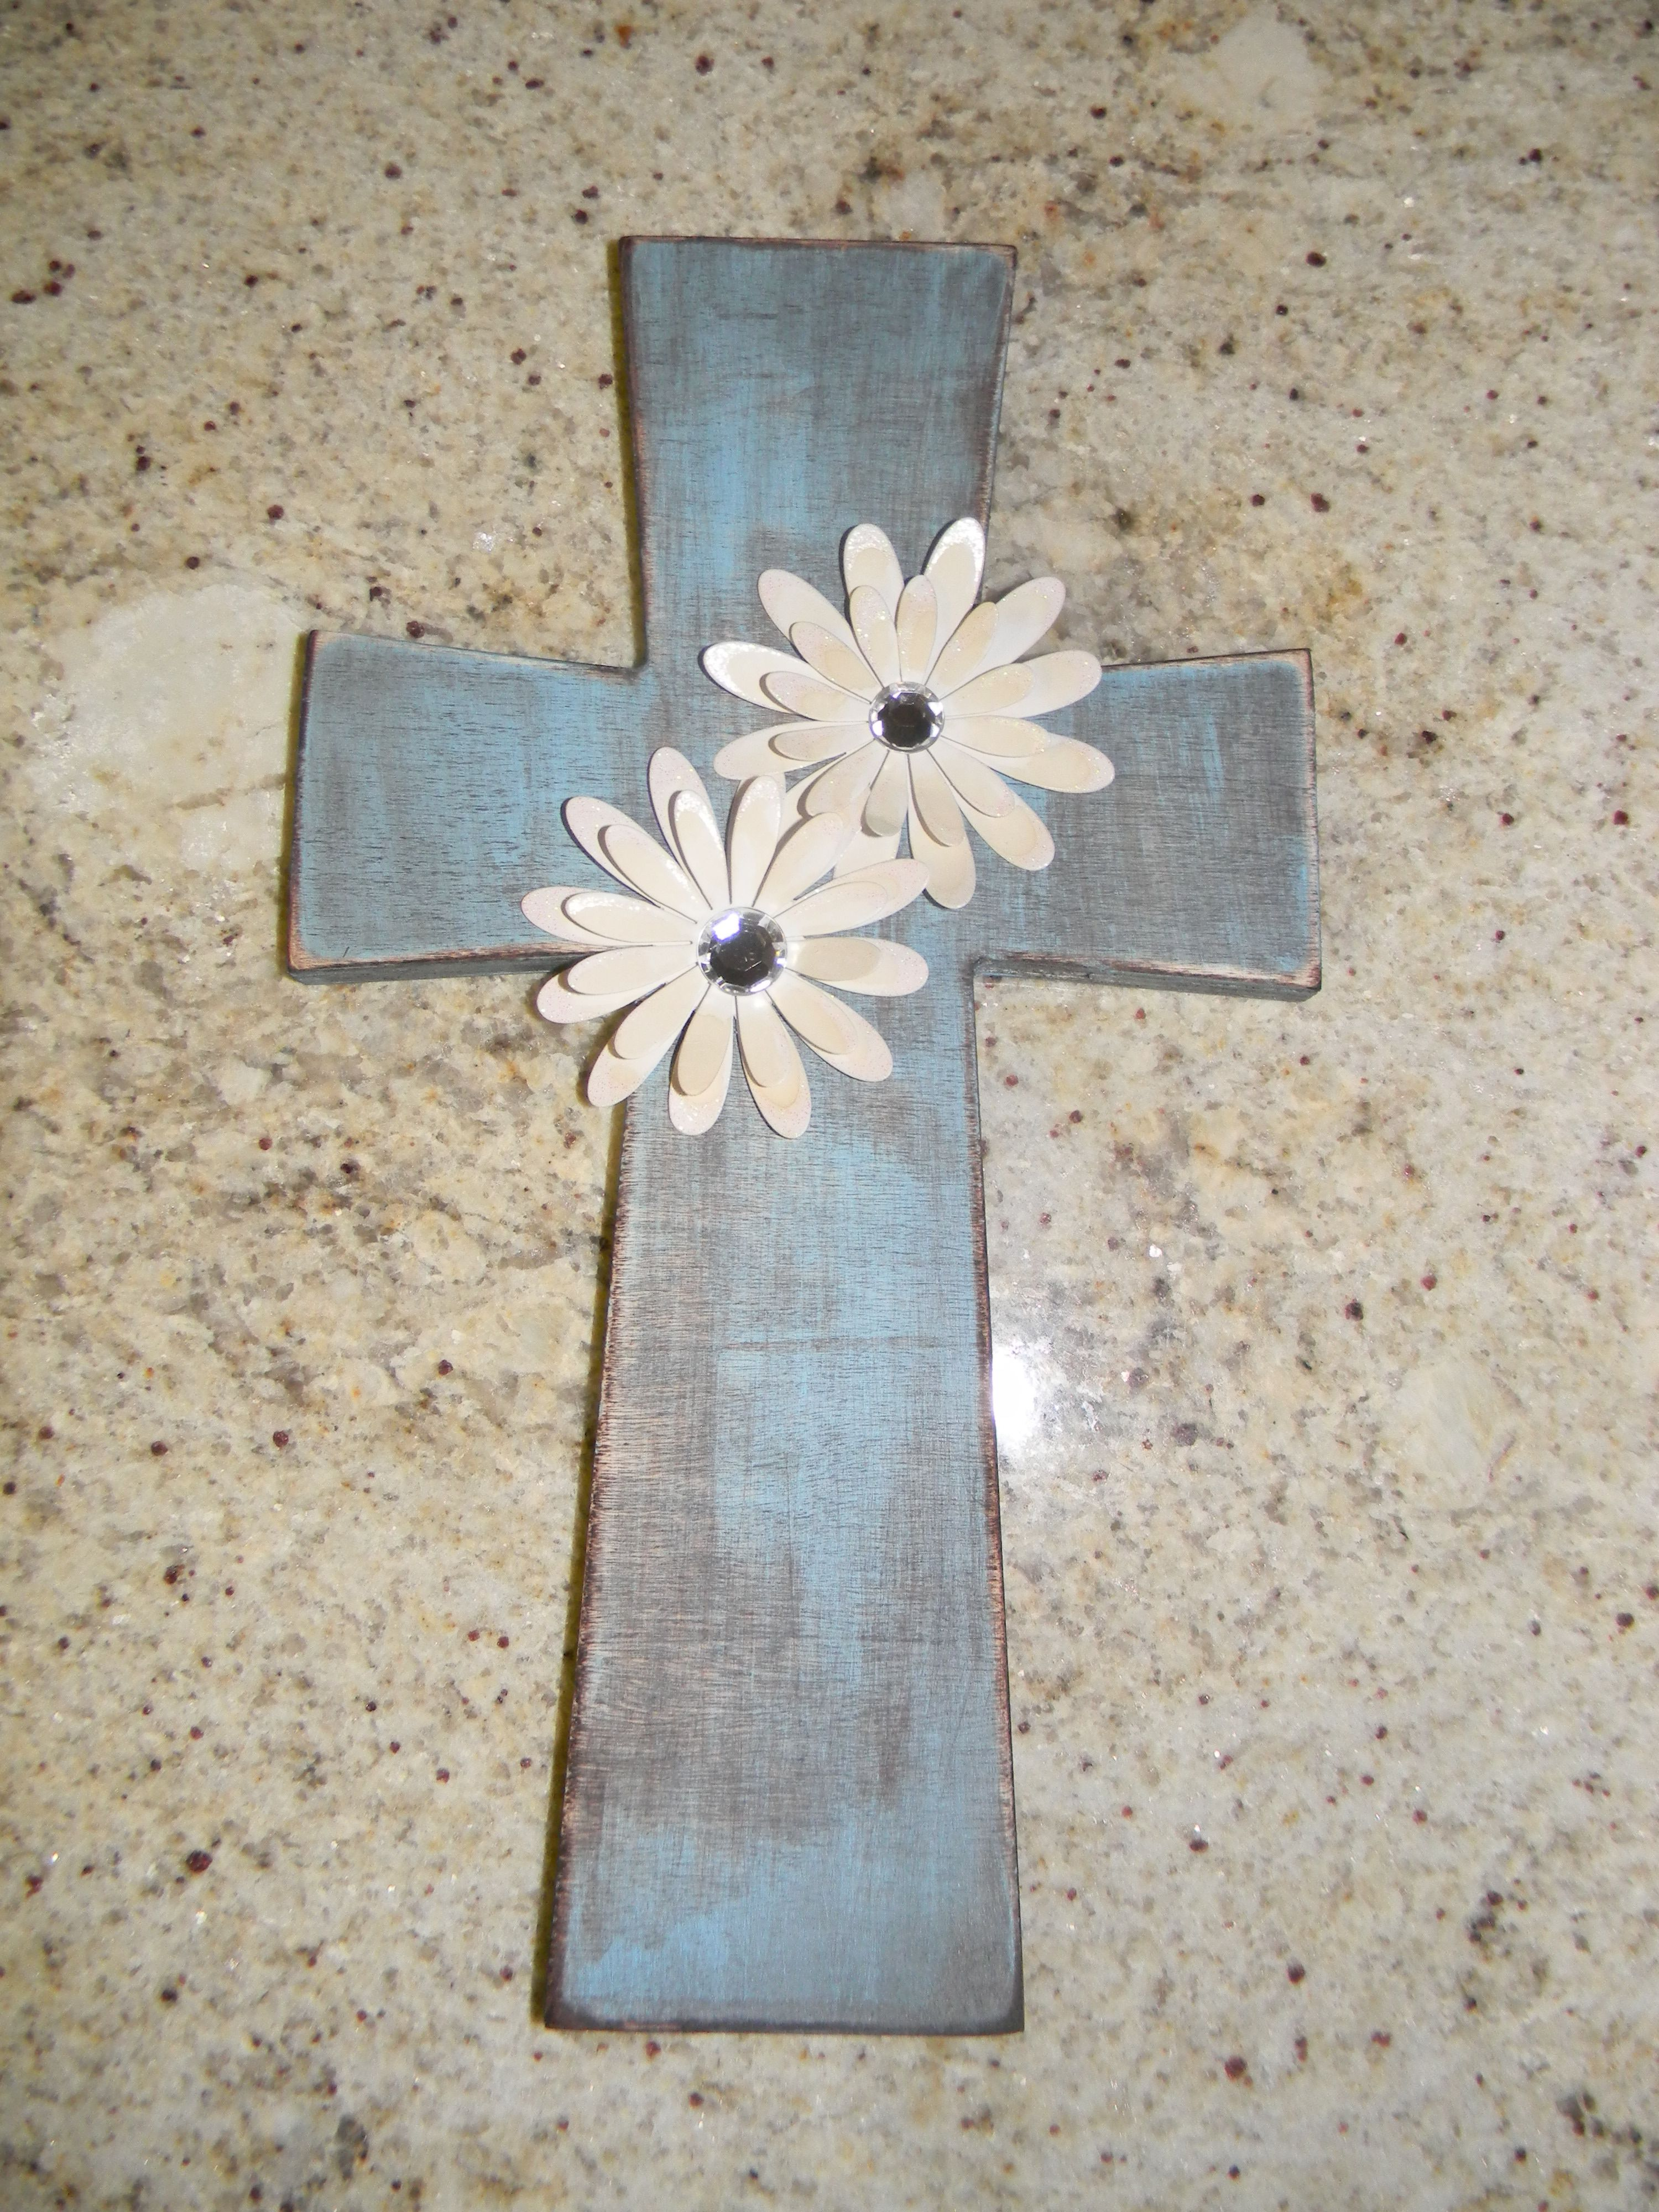 Wooden cross purchased from hobby lobby i painted it sanded it wooden cross purchased from hobby lobby i painted it sanded it stained it amipublicfo Gallery